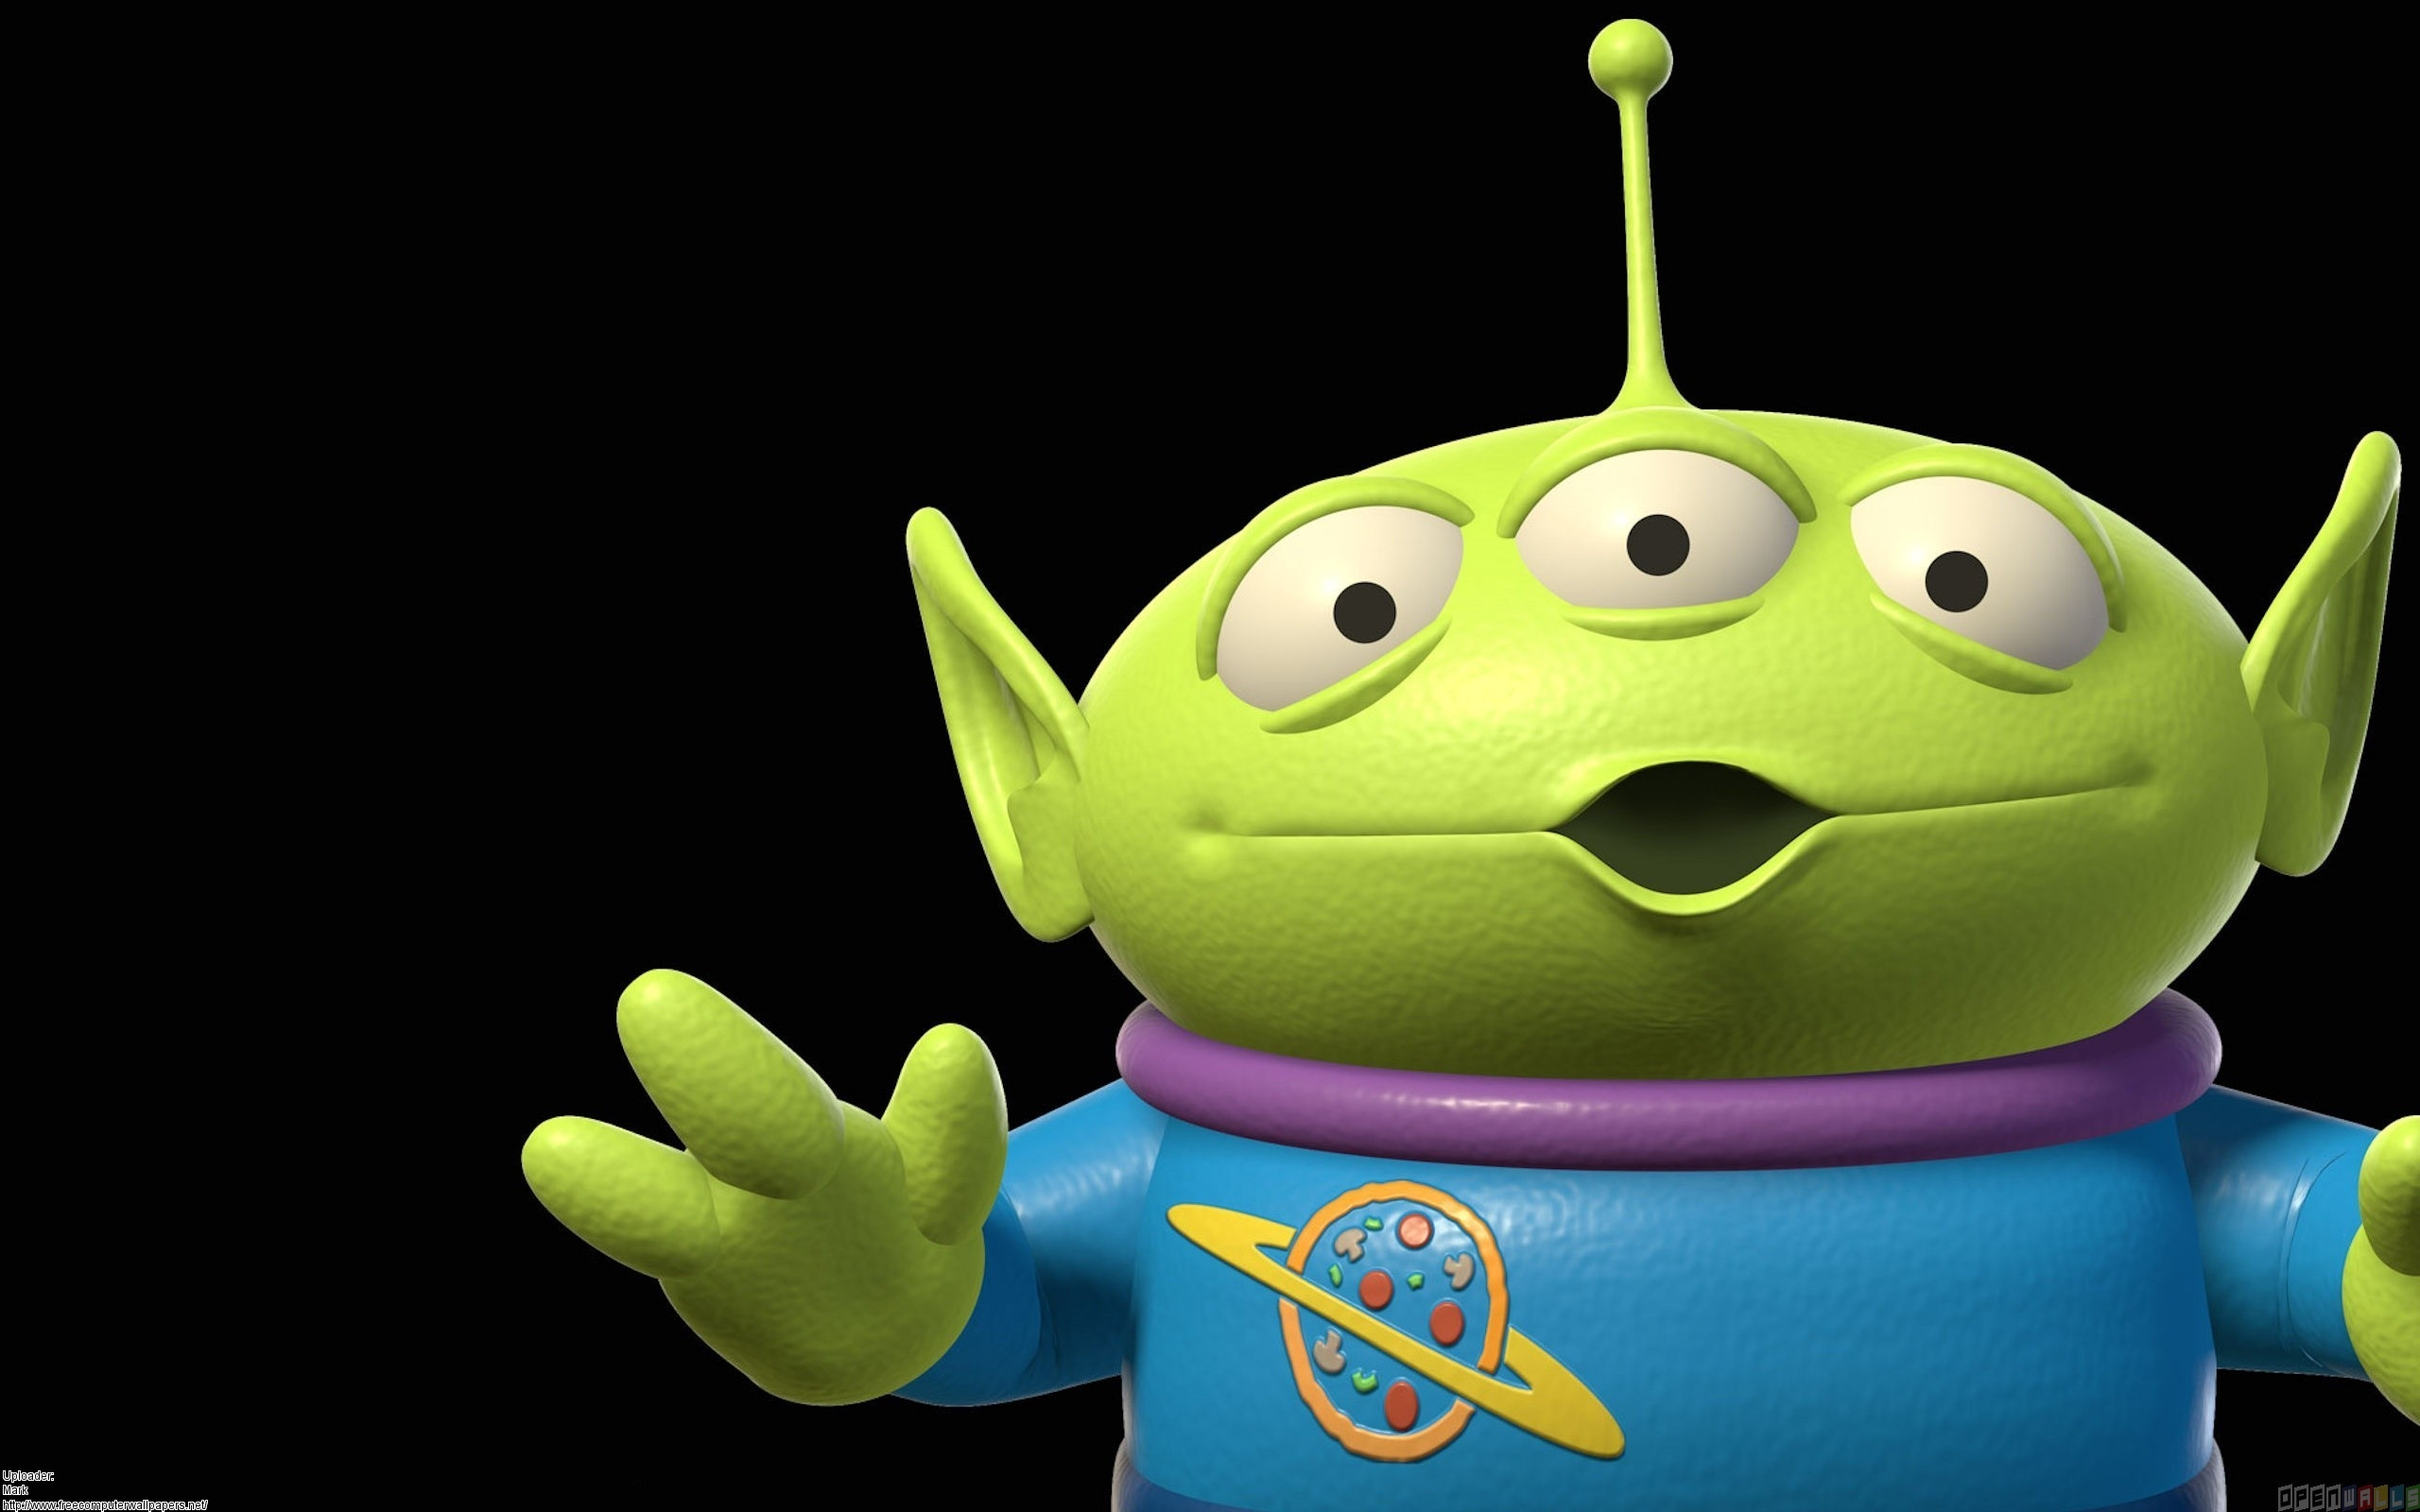 Does not Toy story aliens know